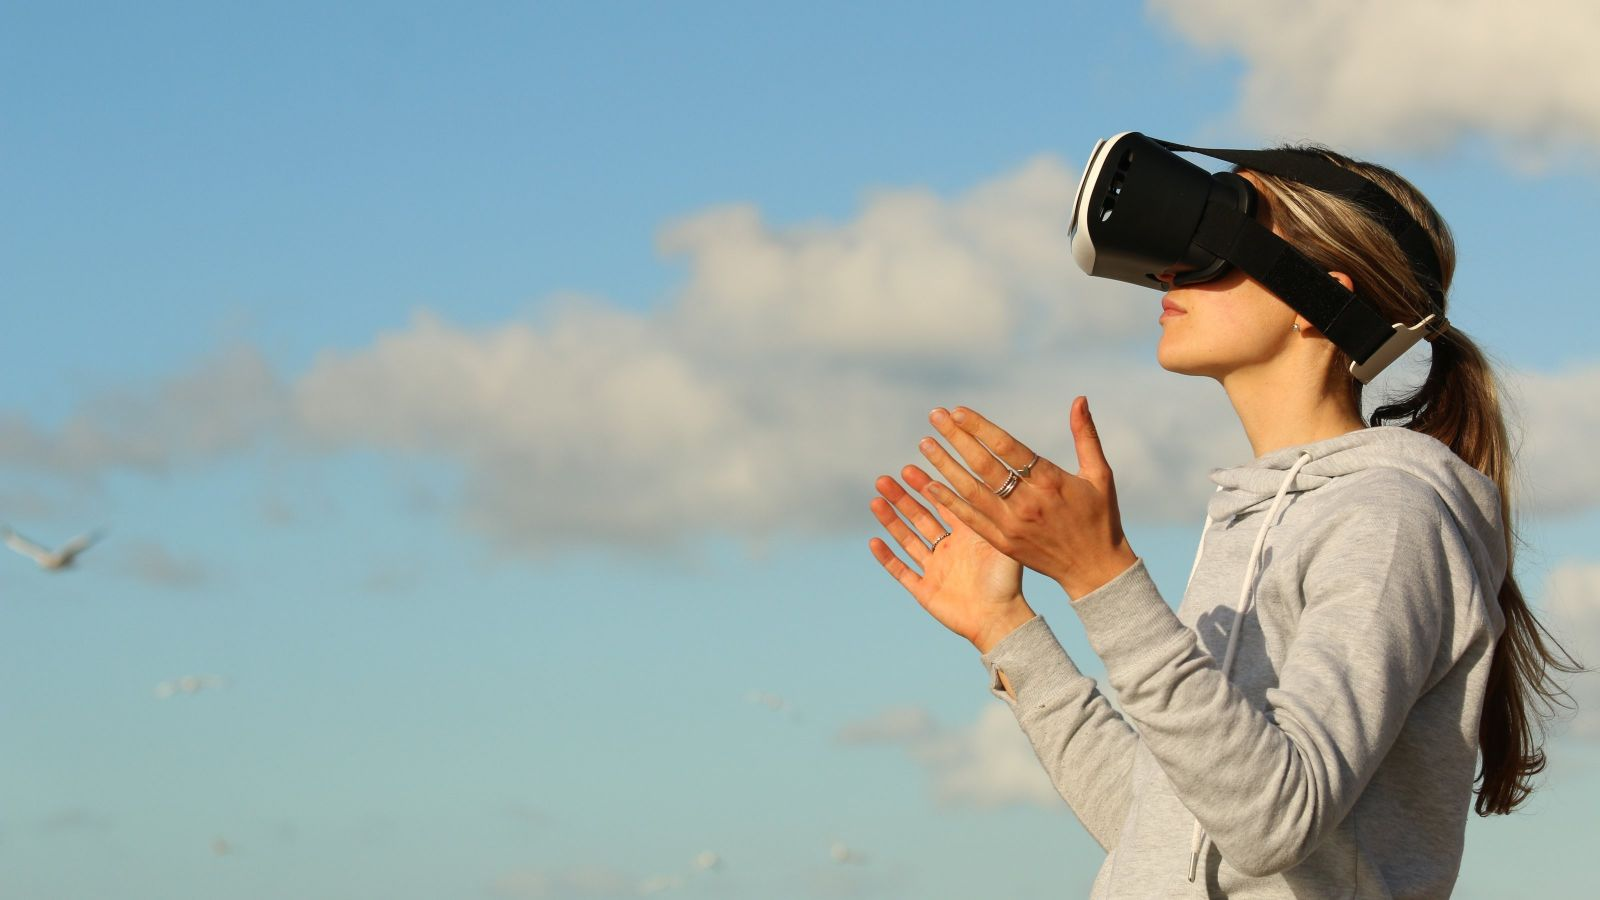 Woman wearing VR headset in front of sky with clouds